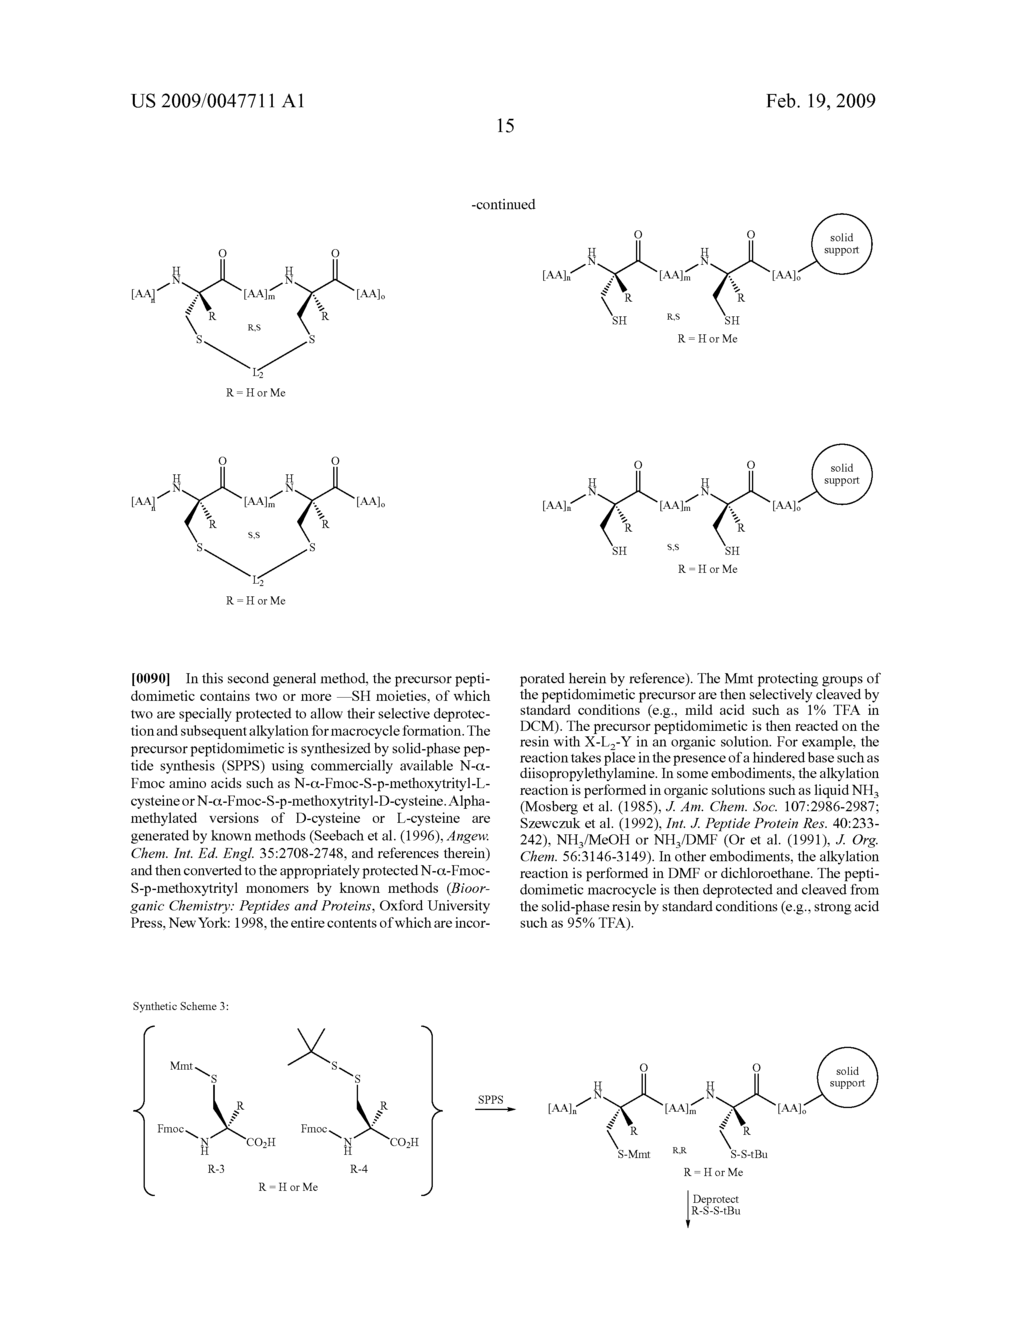 BIS-SULFHYDRYL MACROCYCLIZATION SYSTEMS - diagram, schematic, and image 17